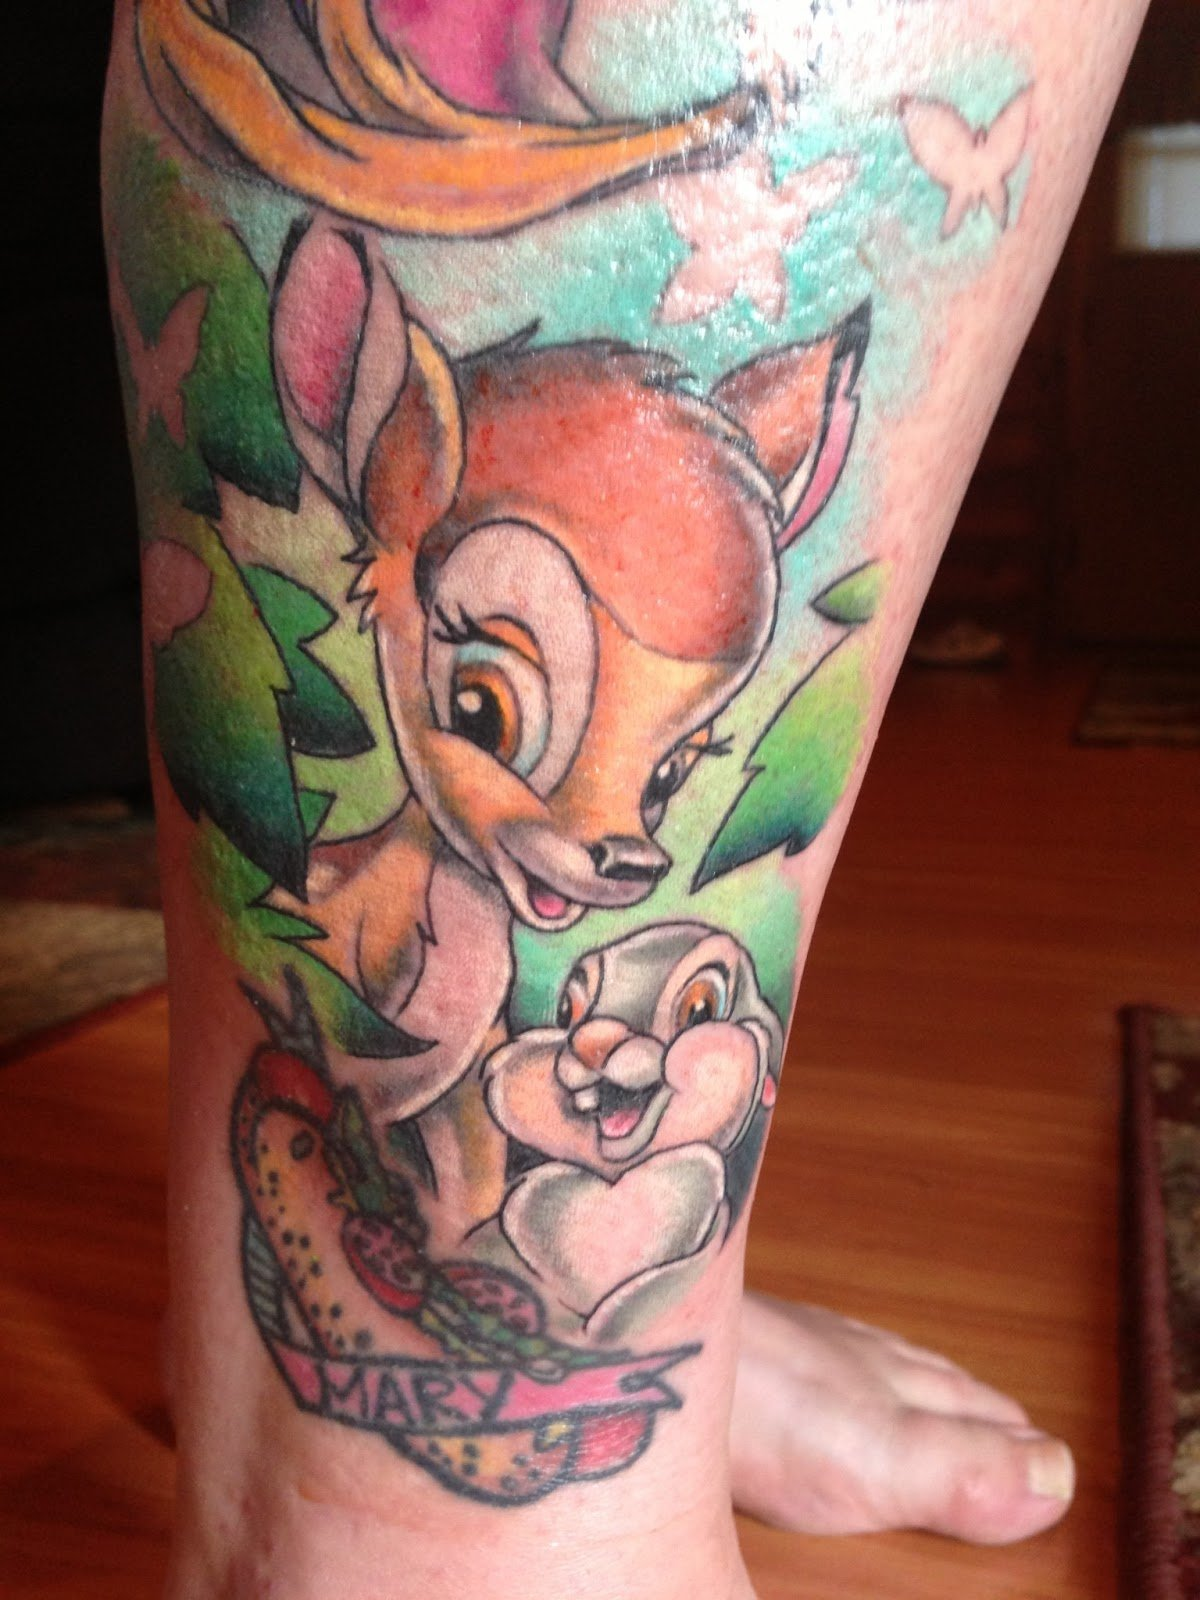 Bambie Tattoo - Lieblingsmotive von Disney Tattoos